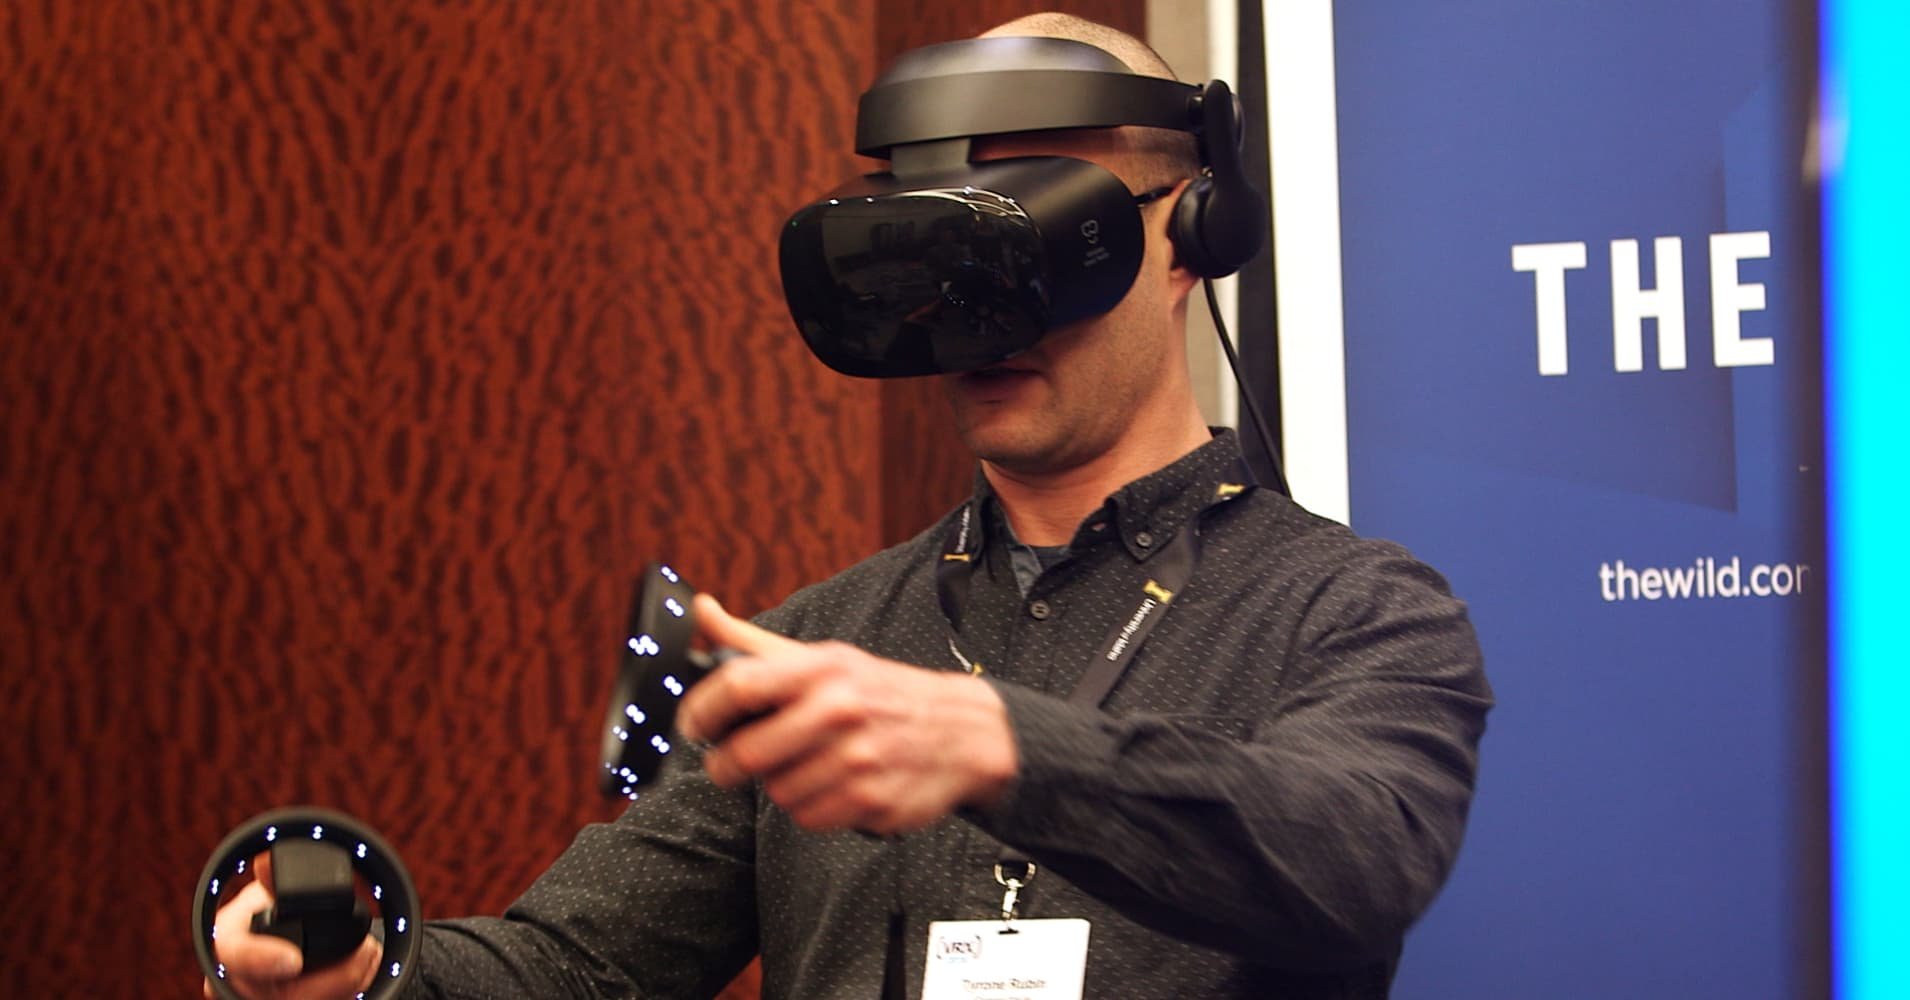 VR training by companies like Microsoft is saving lives, money and ensuring the future of VR and AR